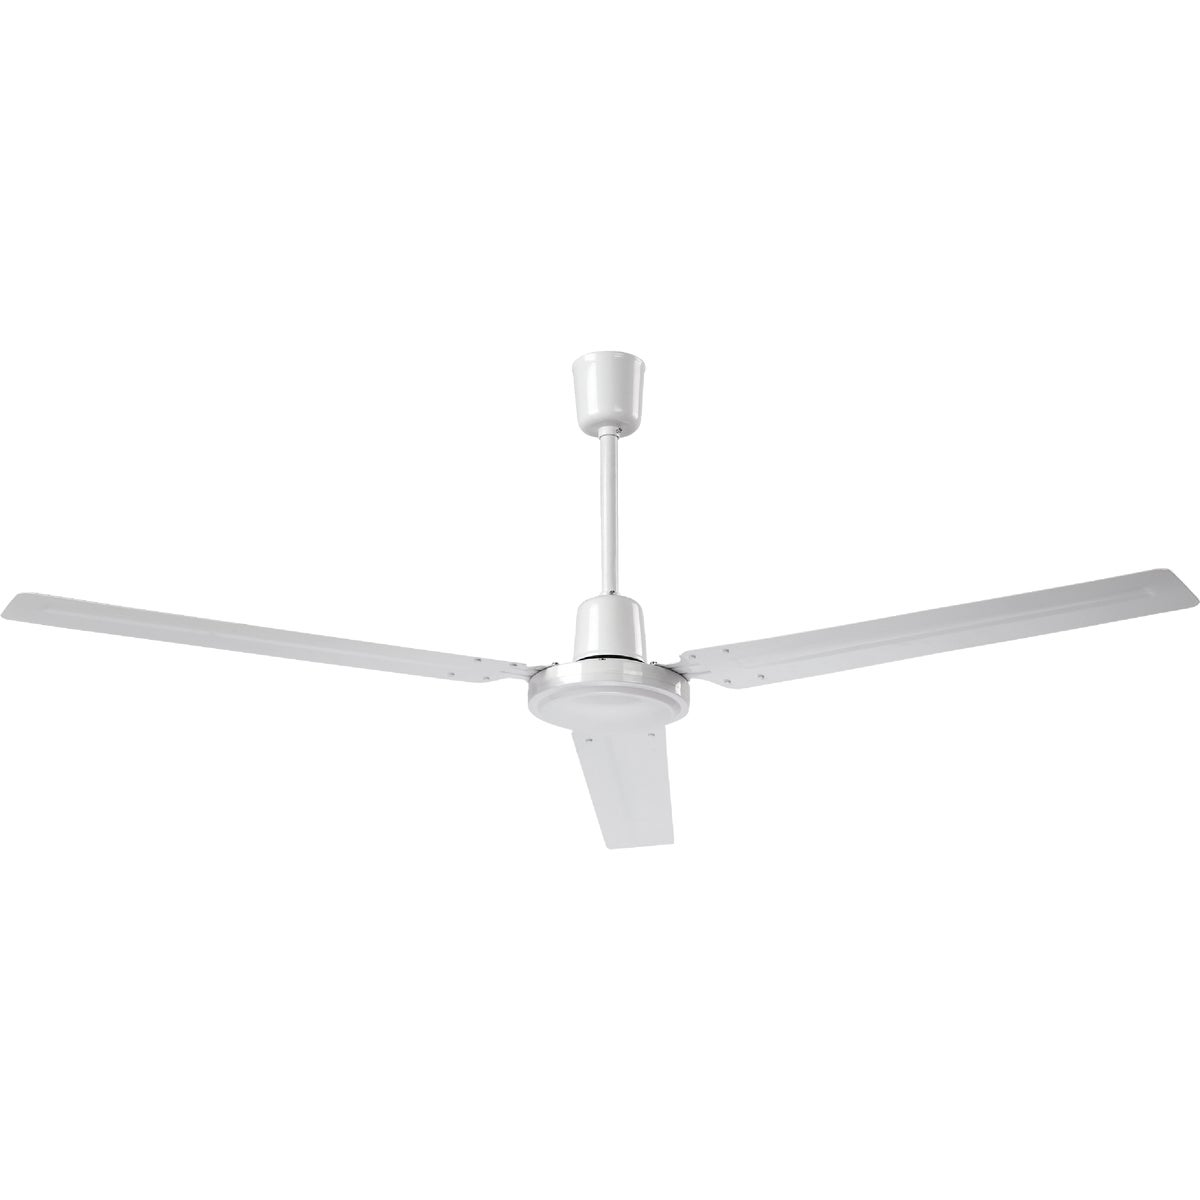 "56"" BN CEILING FAN - CP561118111R by Canarm Gs"